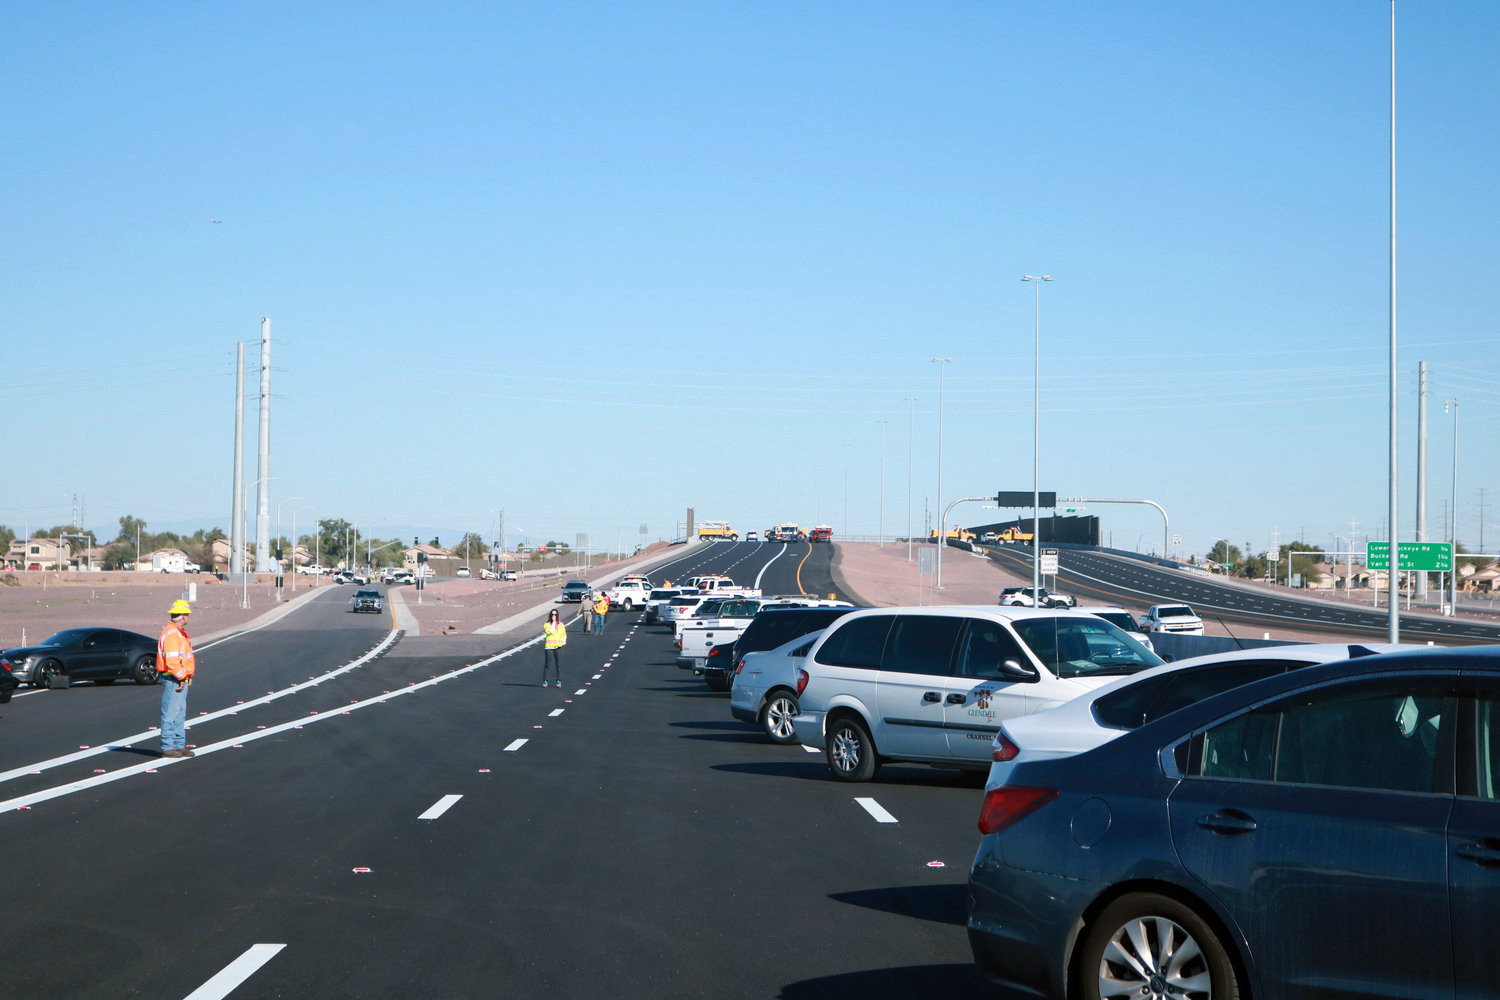 Vehicles are parked along the Loop 202 South Mountain Freeway near Broadway Road on Dec. 18, 2019. Gov. Doug Ducey and other Arizona officials kicked off the impending opening of the $1.7 billion project, which is expected to open by end of 2019.